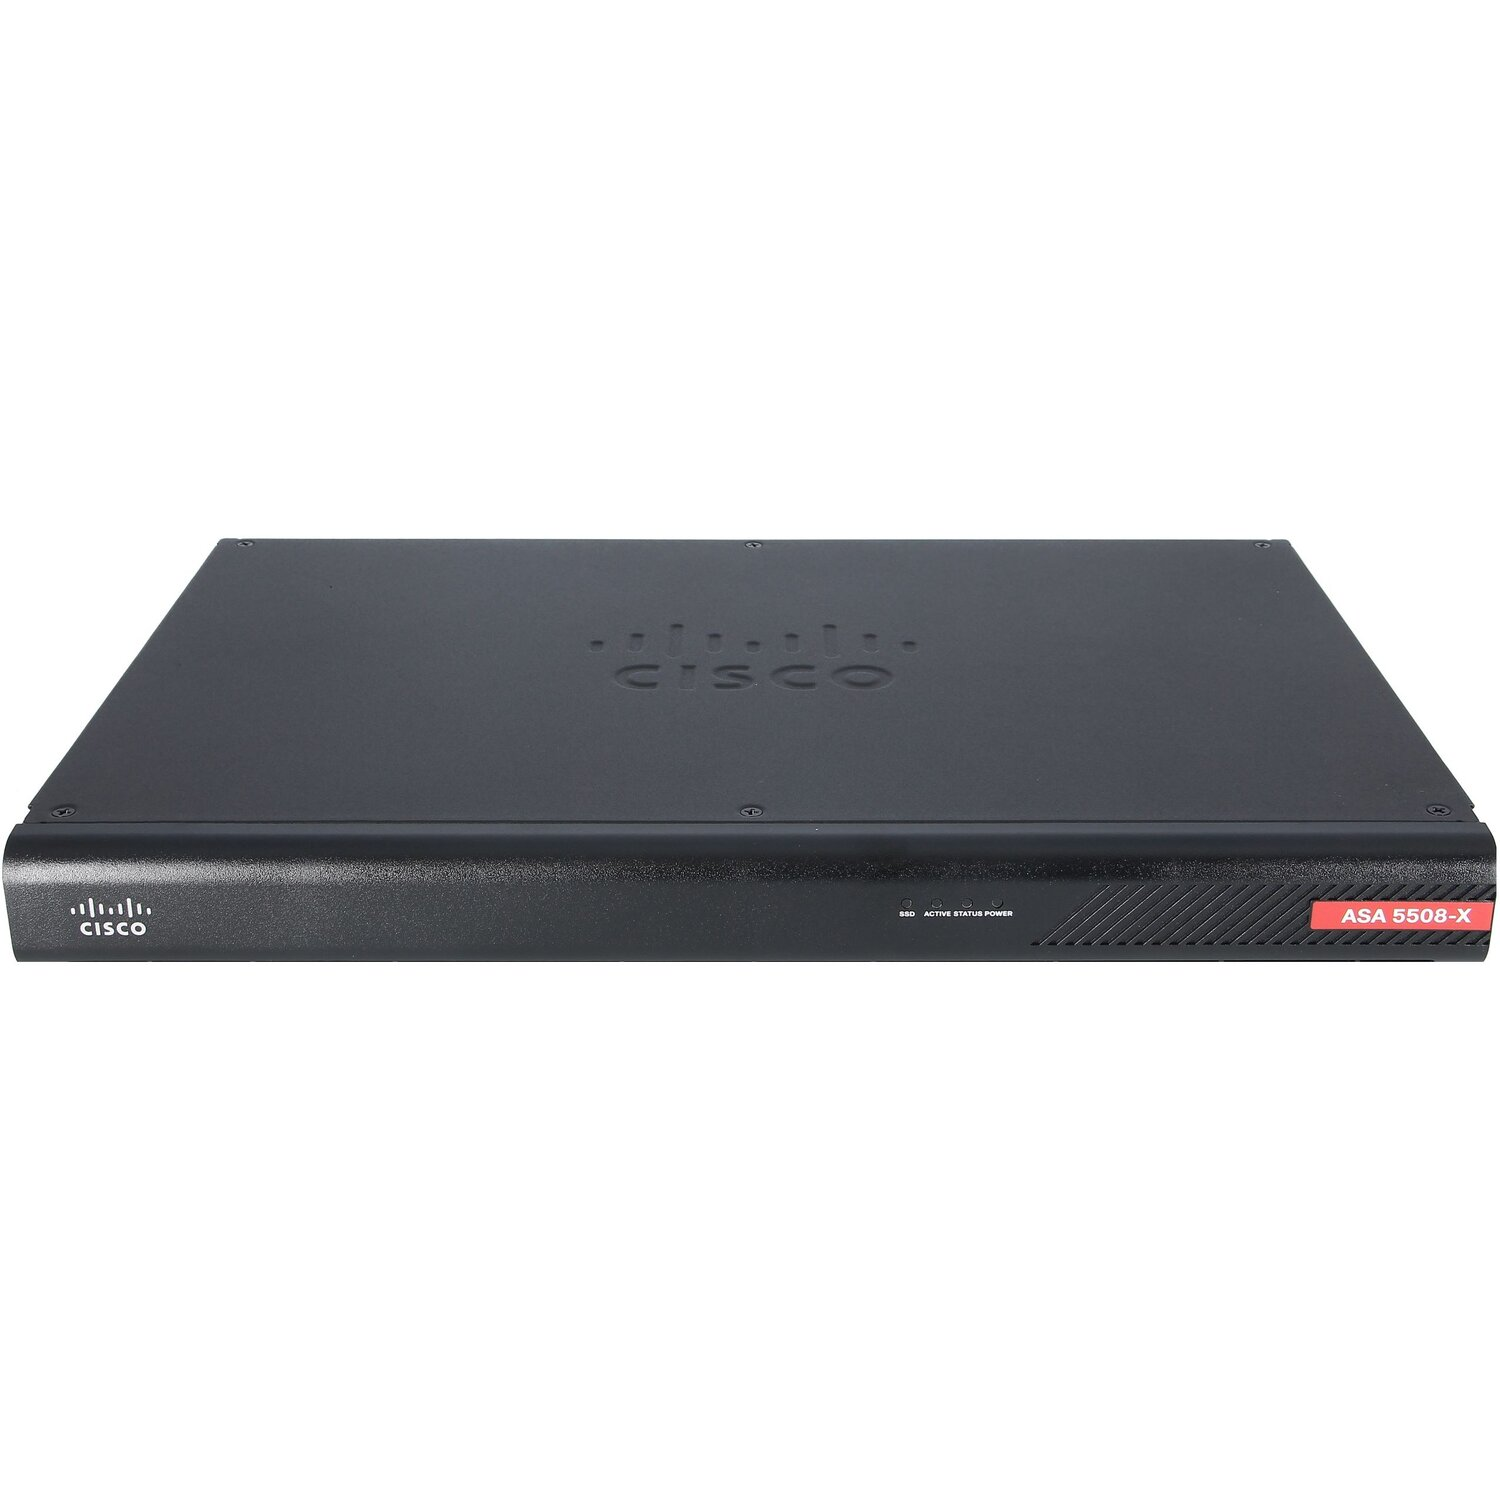 Cisco ASA 5508-X with FirePOWER services. 8GE Data. 1GE Mgmt. AC. 3DES/AES - ASA5508-K9